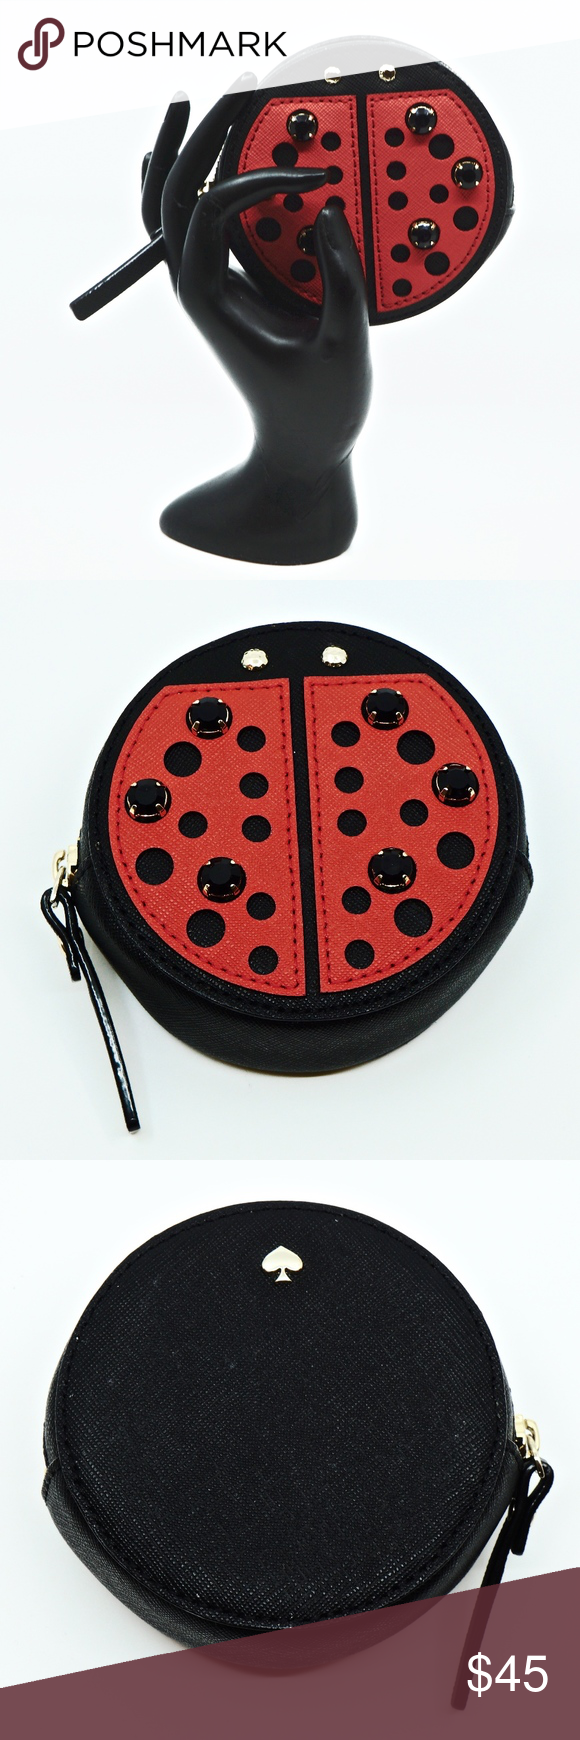 4511ba5712e7 KATE SPADE~turn over a new leaf~LADYBUG COIN PURSE This is a Kate ...